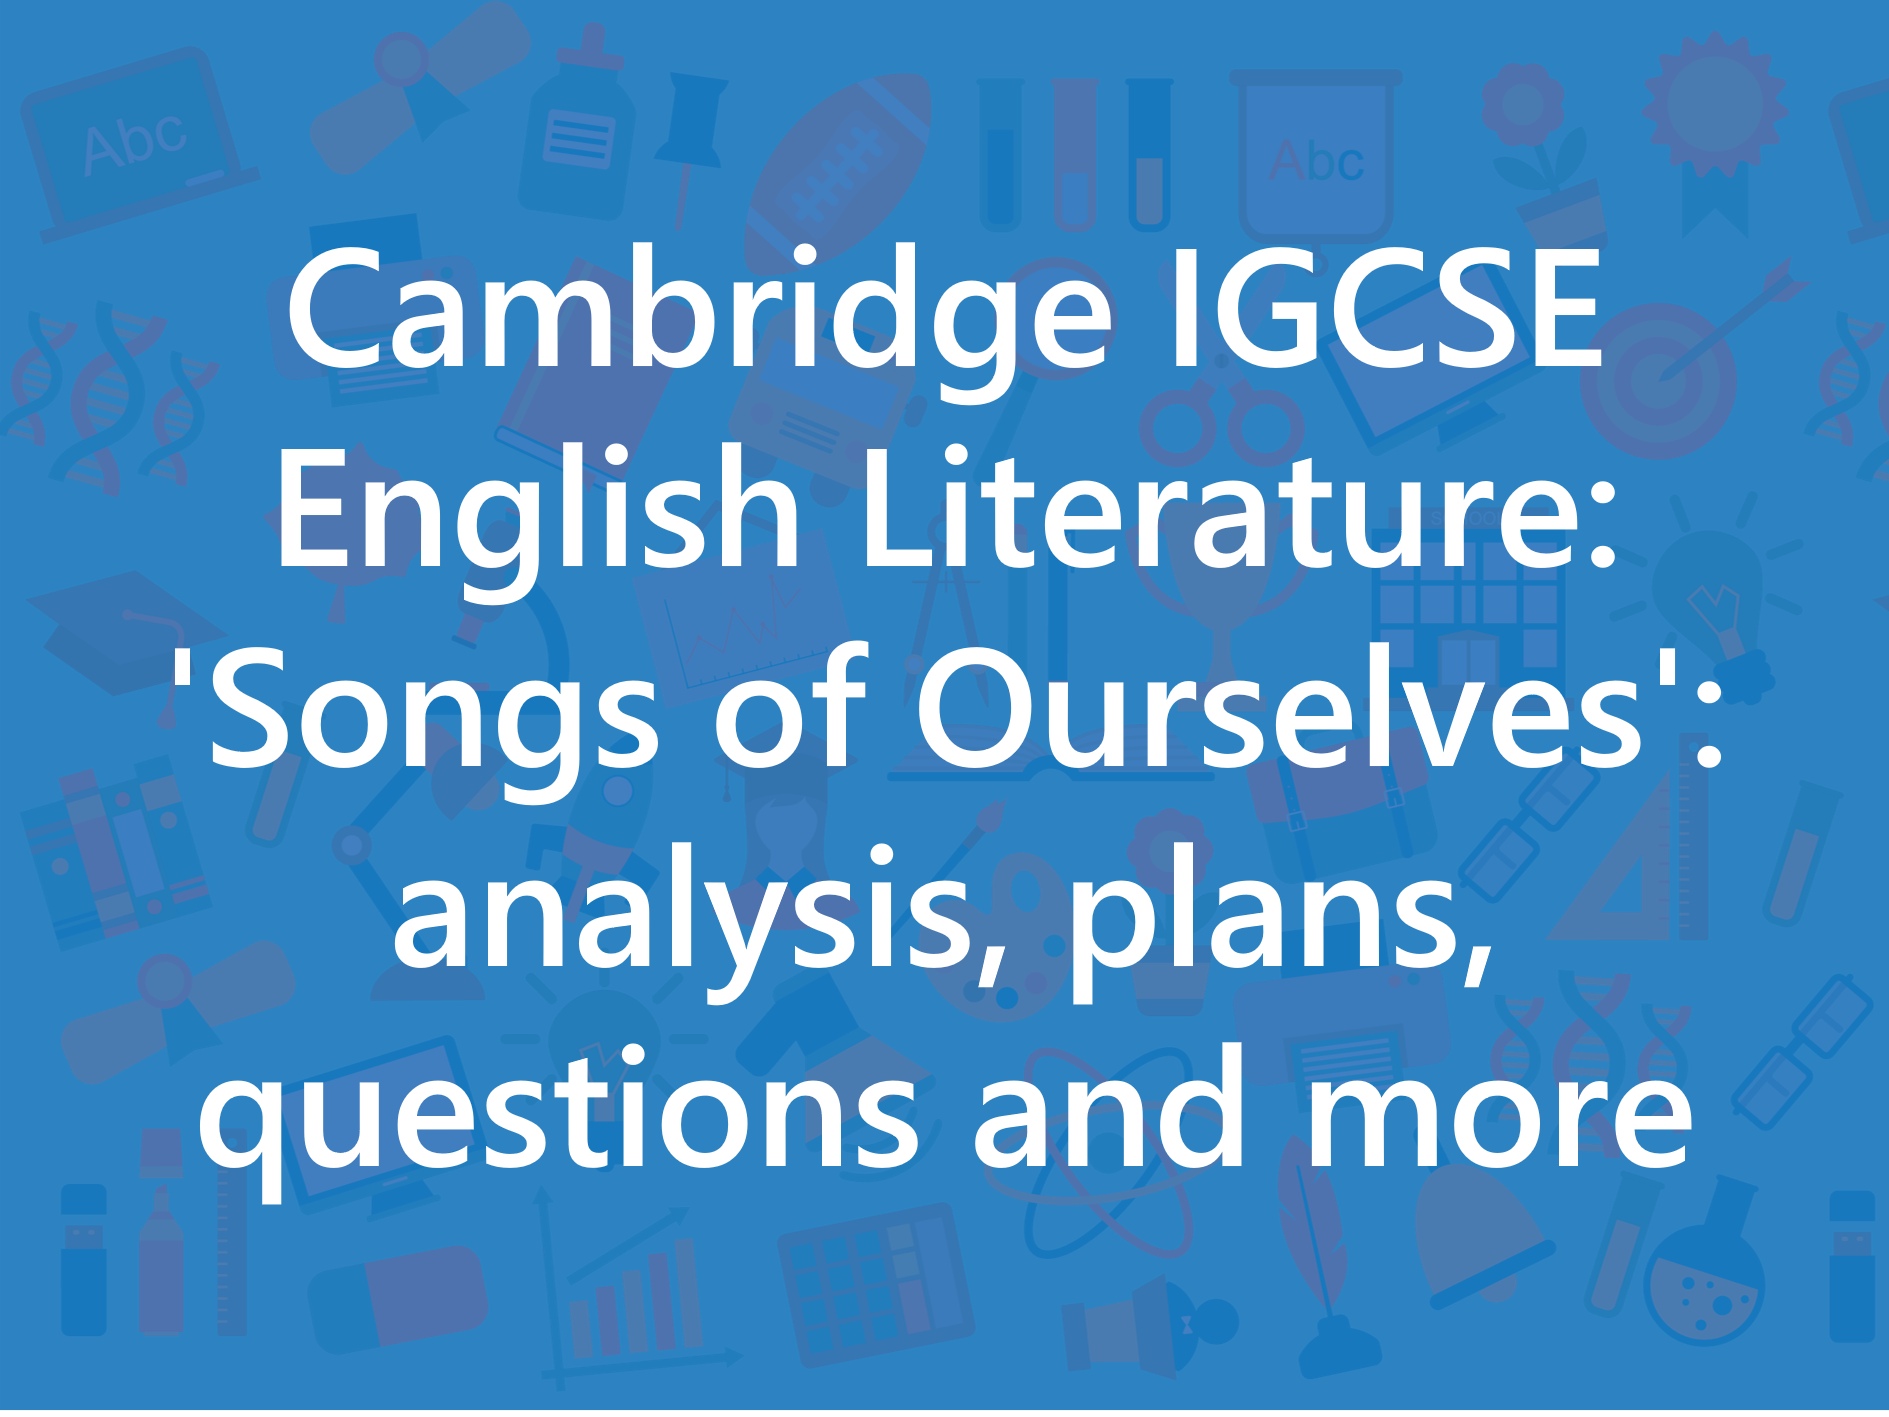 Cambridge IGCSE English Literature: 'Songs of Ourselves': analysis, plans, questions and more